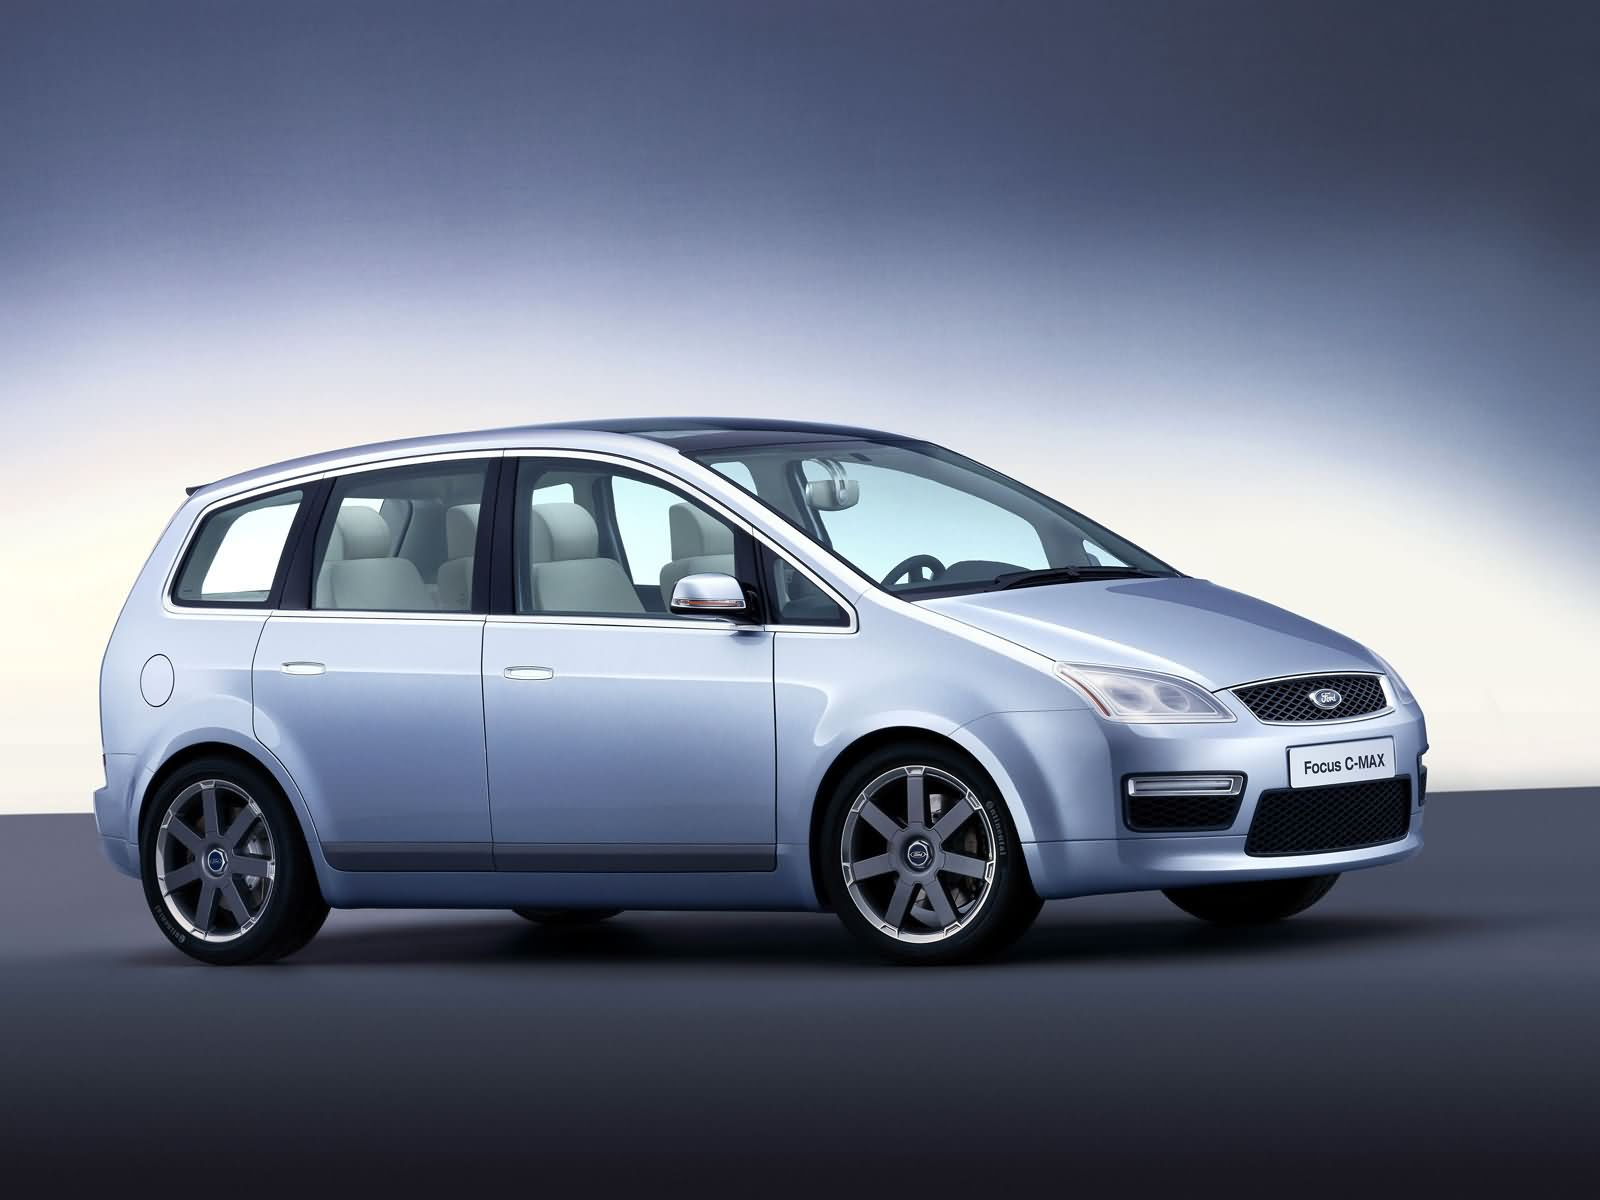 Ford focus c max picture 3302 ford photo gallery carsbase com